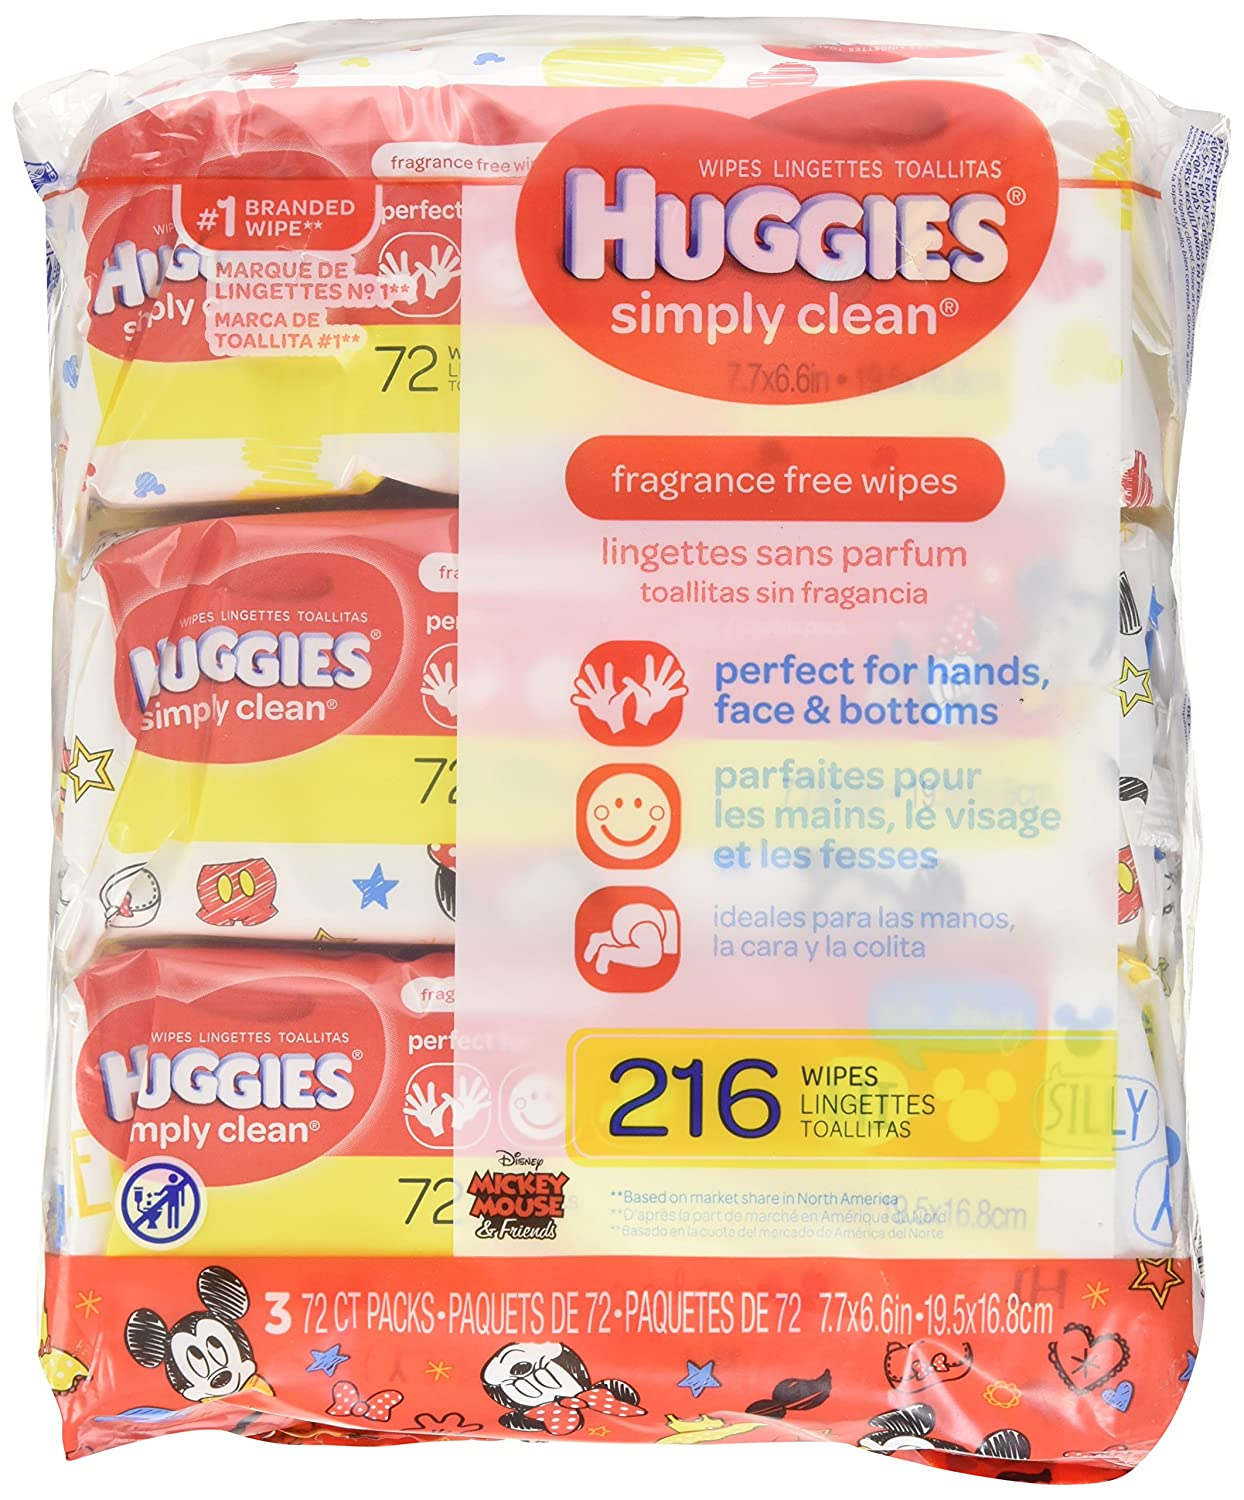 Huggies Simply Clean Fragrance-free Baby Wipes, Soft Pack 3 Pack, 192 Count Kimberly Clark